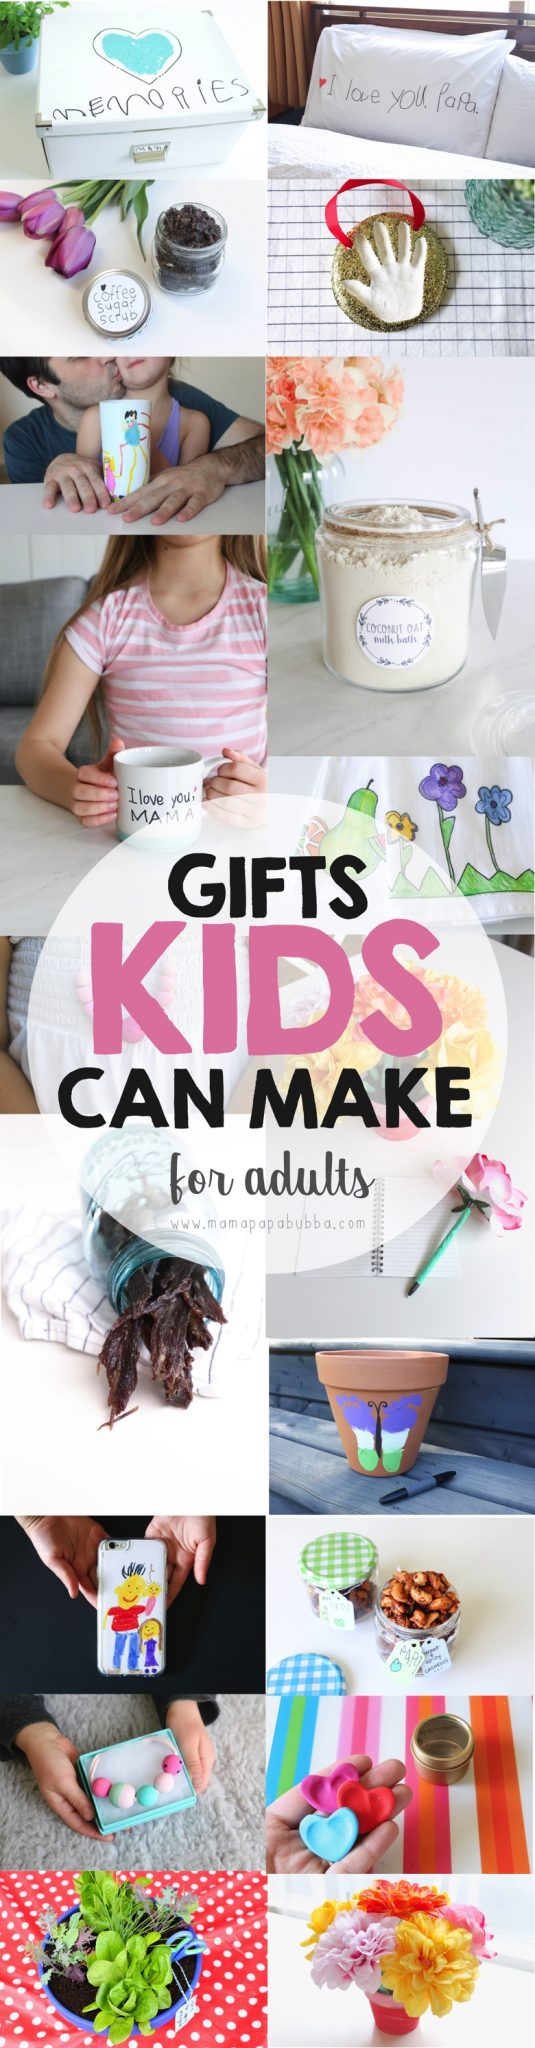 Creative Gifts Kids Can Make for Adults | Mama Papa Bubba